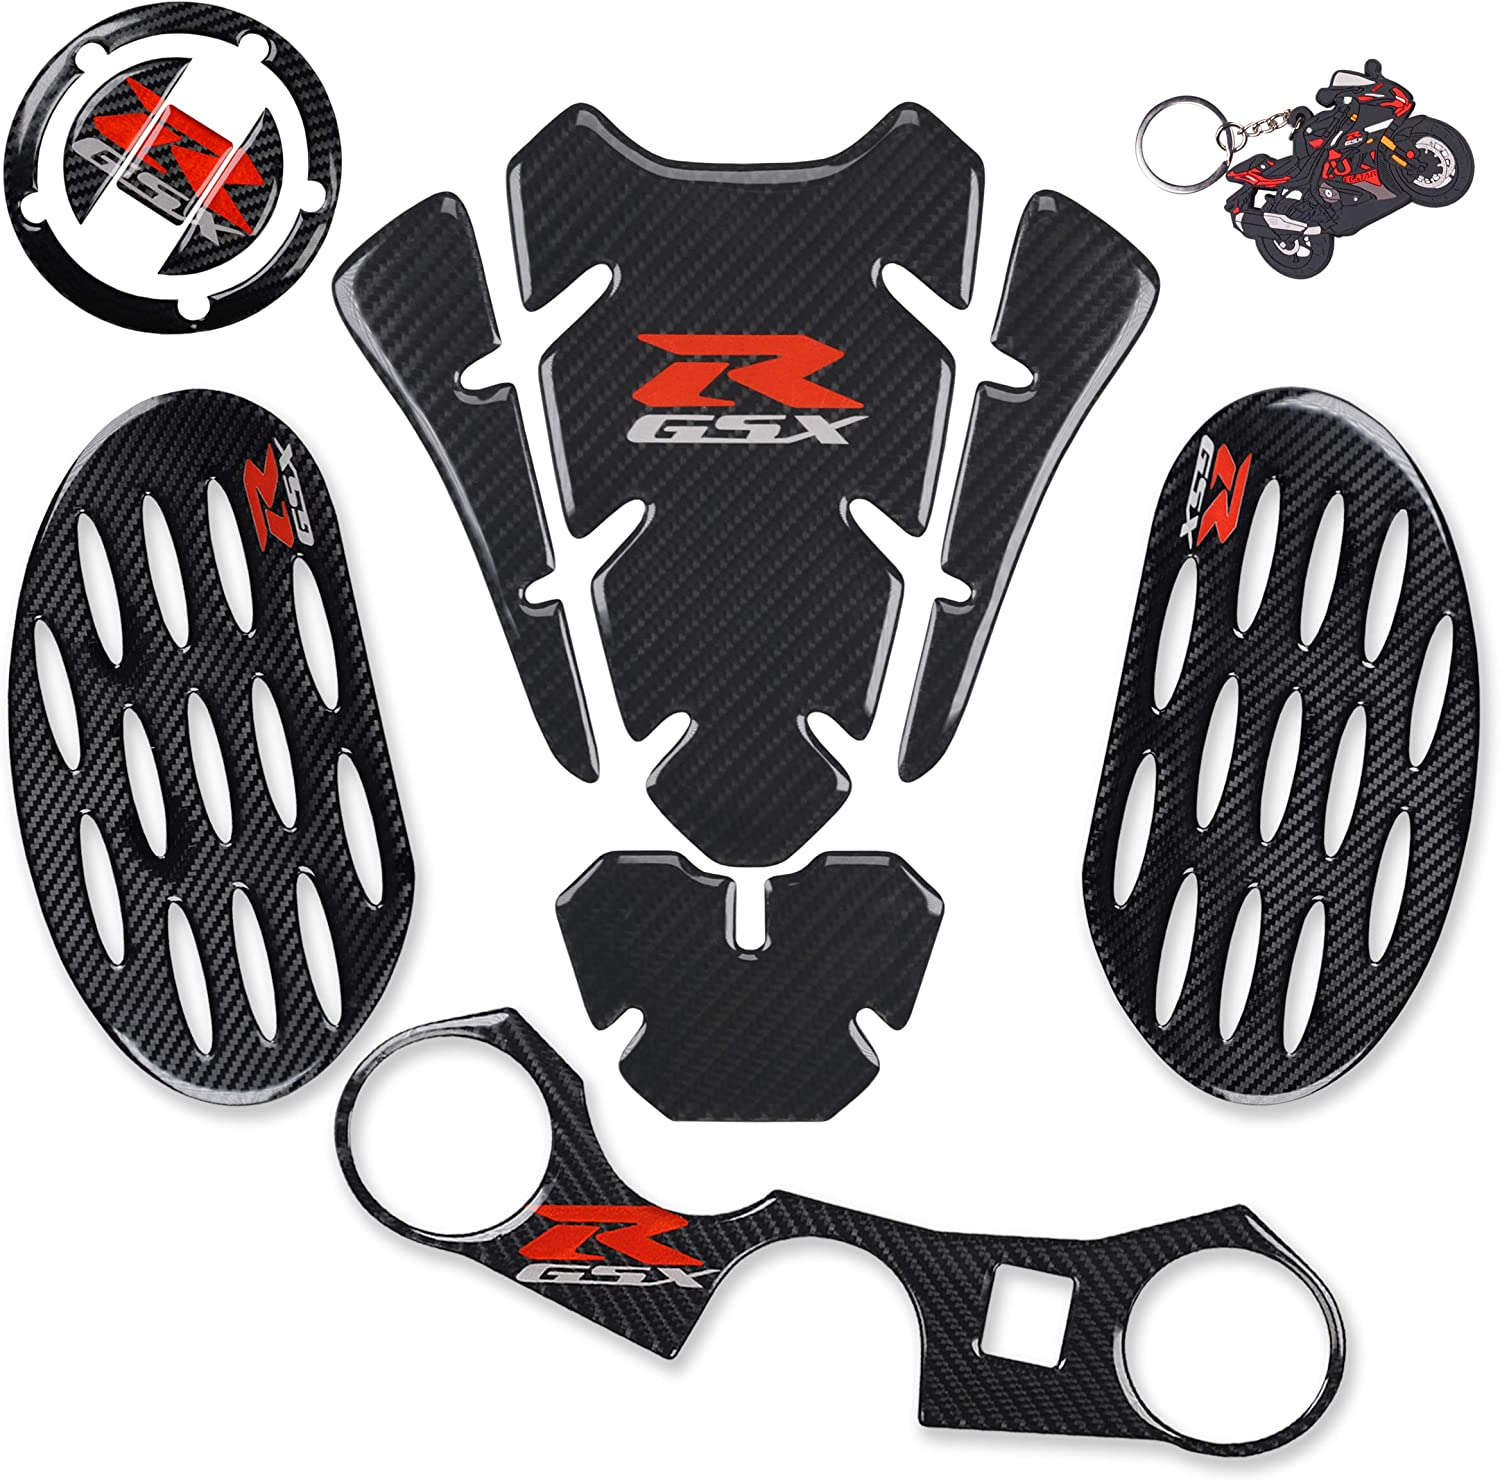 Tank Pad Triple Tree Front End Upper Top Clamp Decal Stickers,Tank Protector with Keychain for GSXR 600 GSXR 750 GSXR 1000 K6 K7 K8 K9 L1 2006-2017 REVSOSTAR Real Carbon Look Gas Cap 6Pcs Per Set